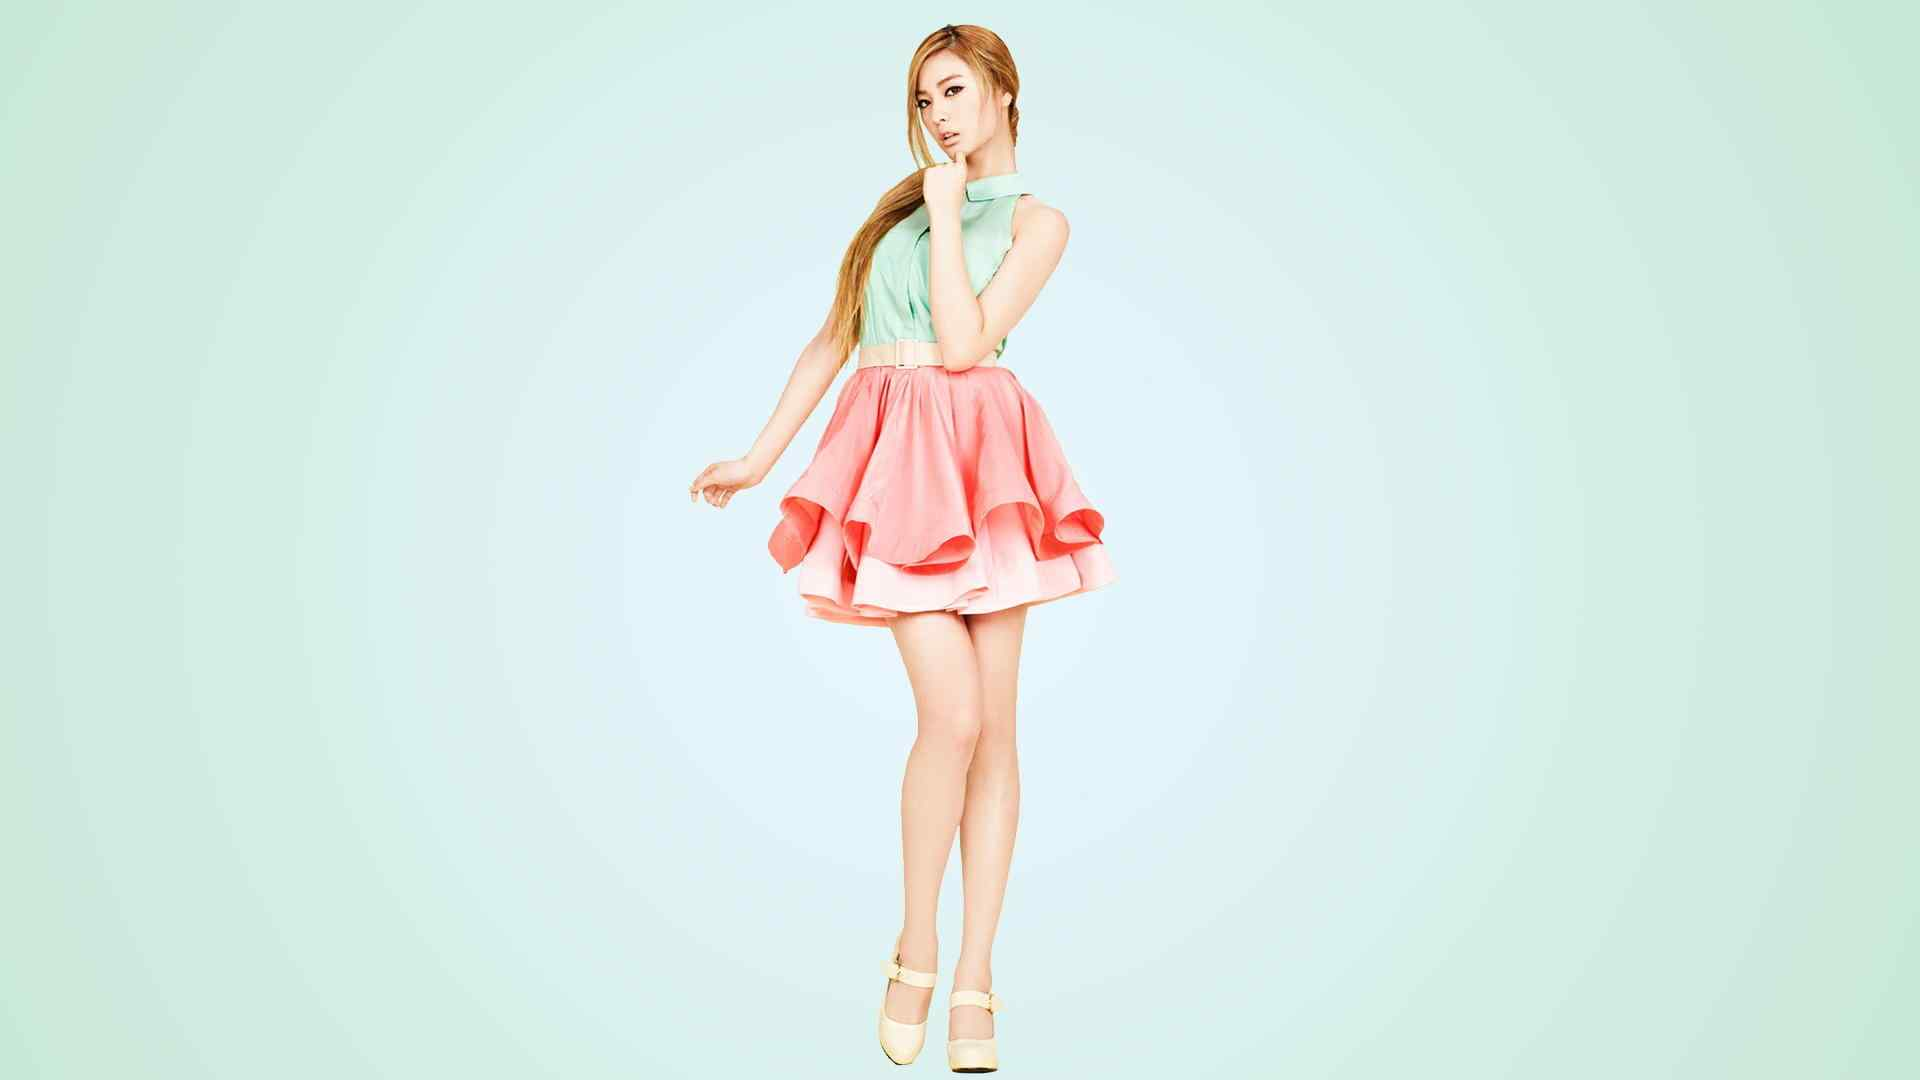 Wallpaper D Fashion Dress